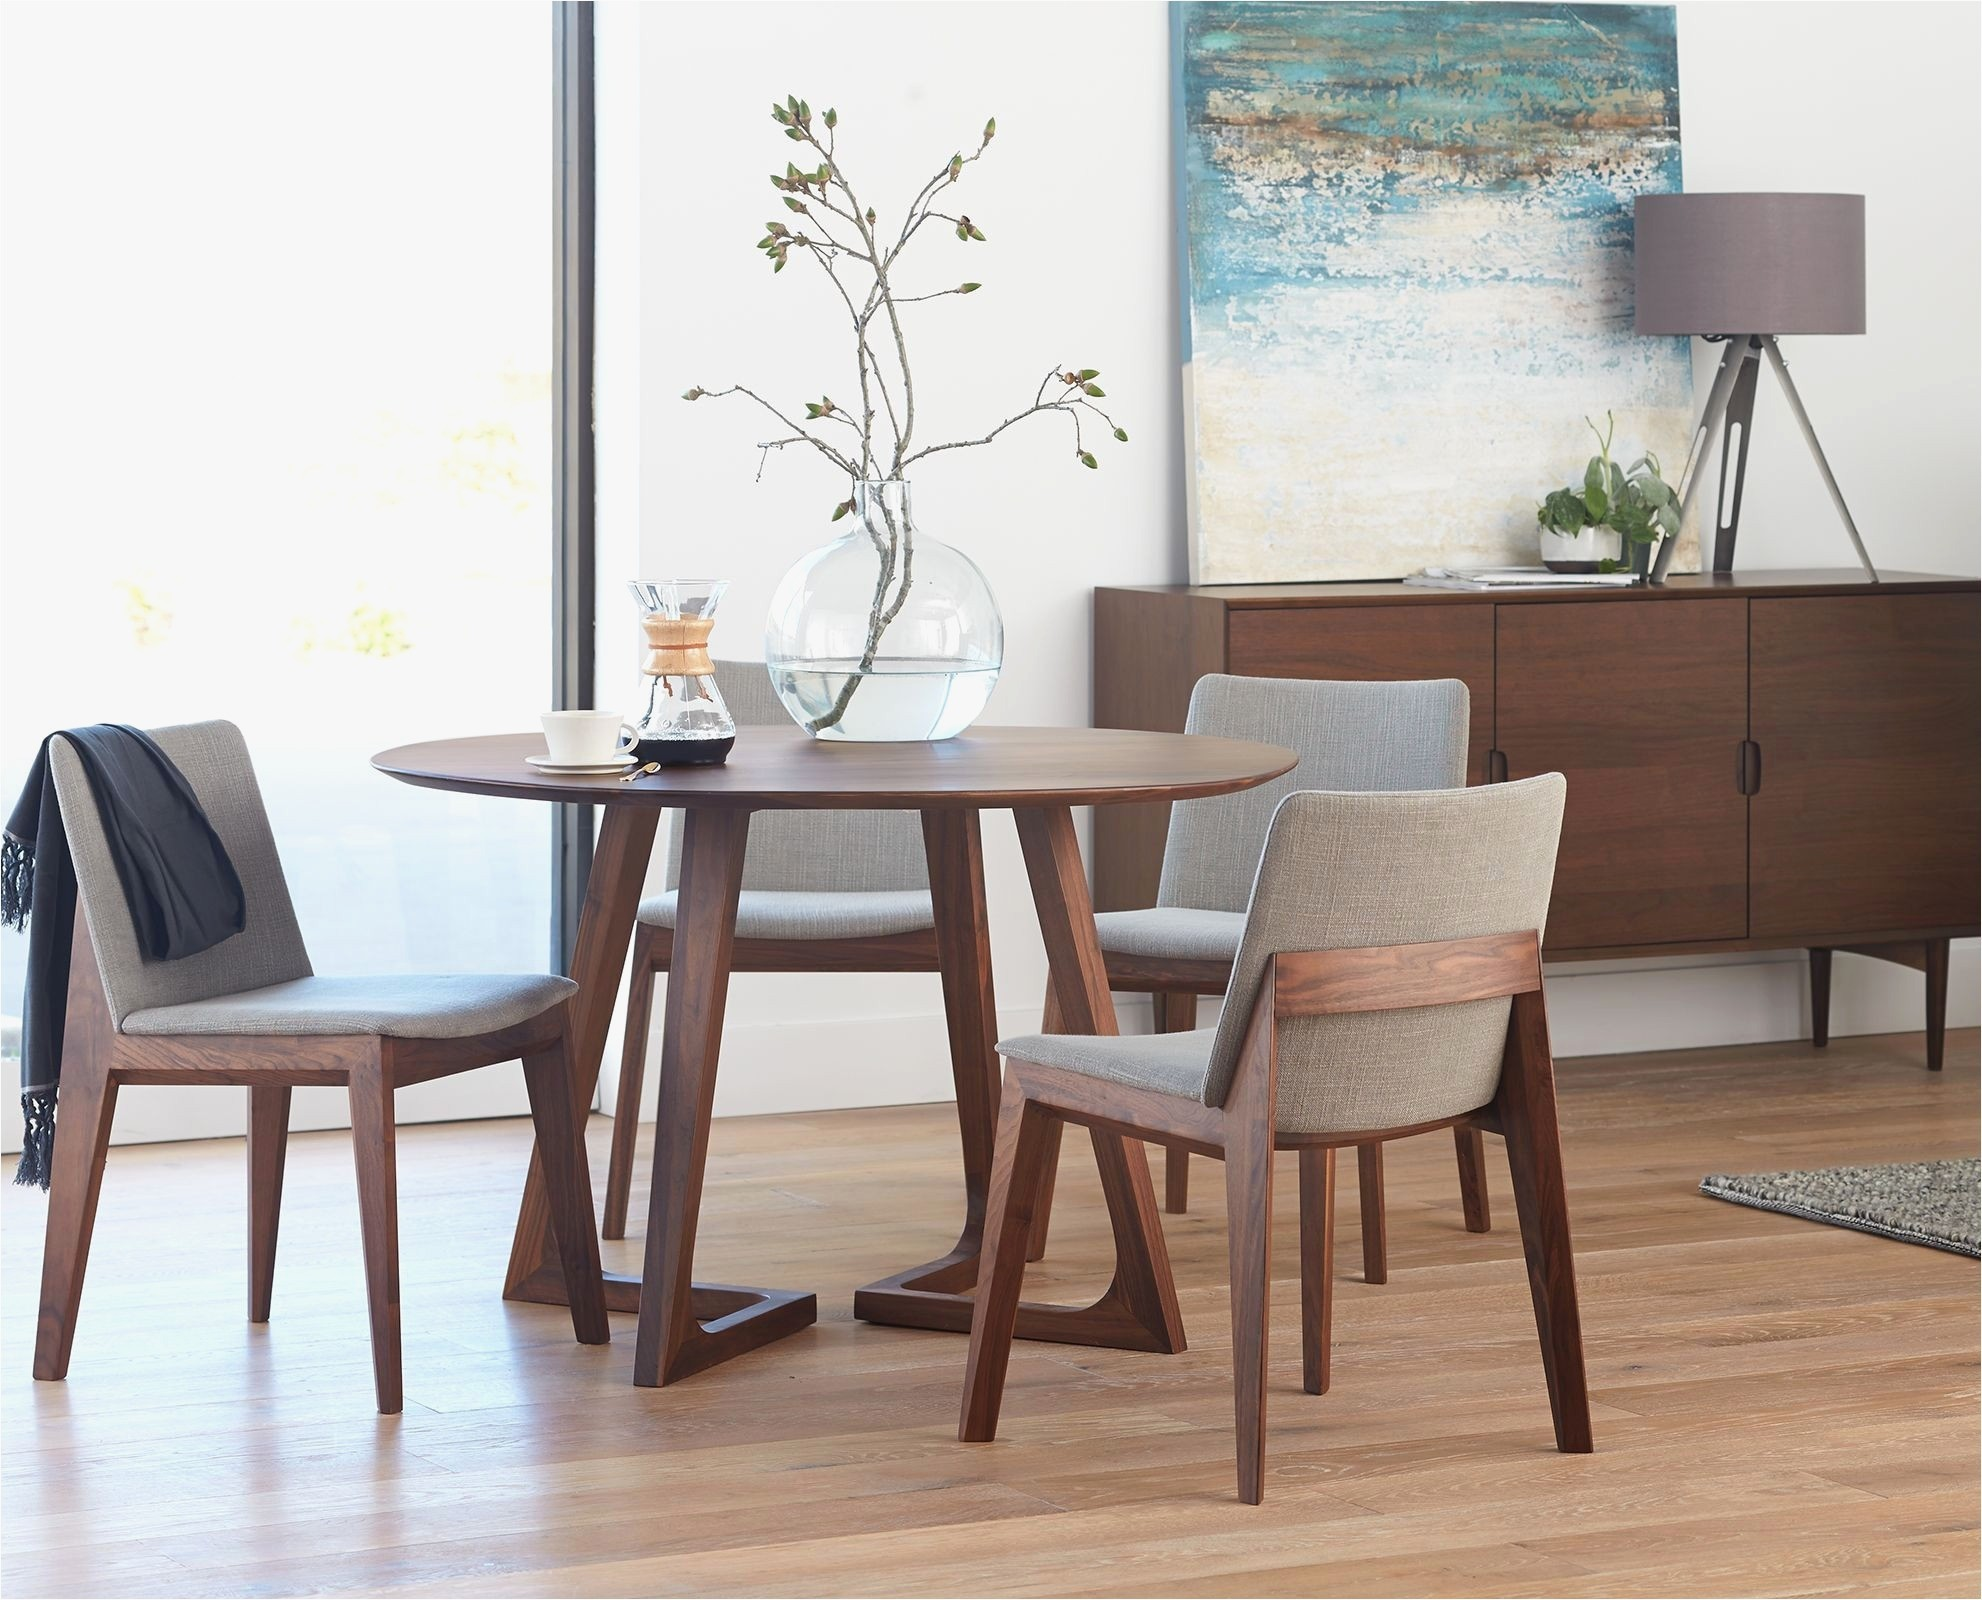 Collapsible Dining Room Table Pleasant Teak Folding Table Design Folding Dining Room Table and Chairs Fresh